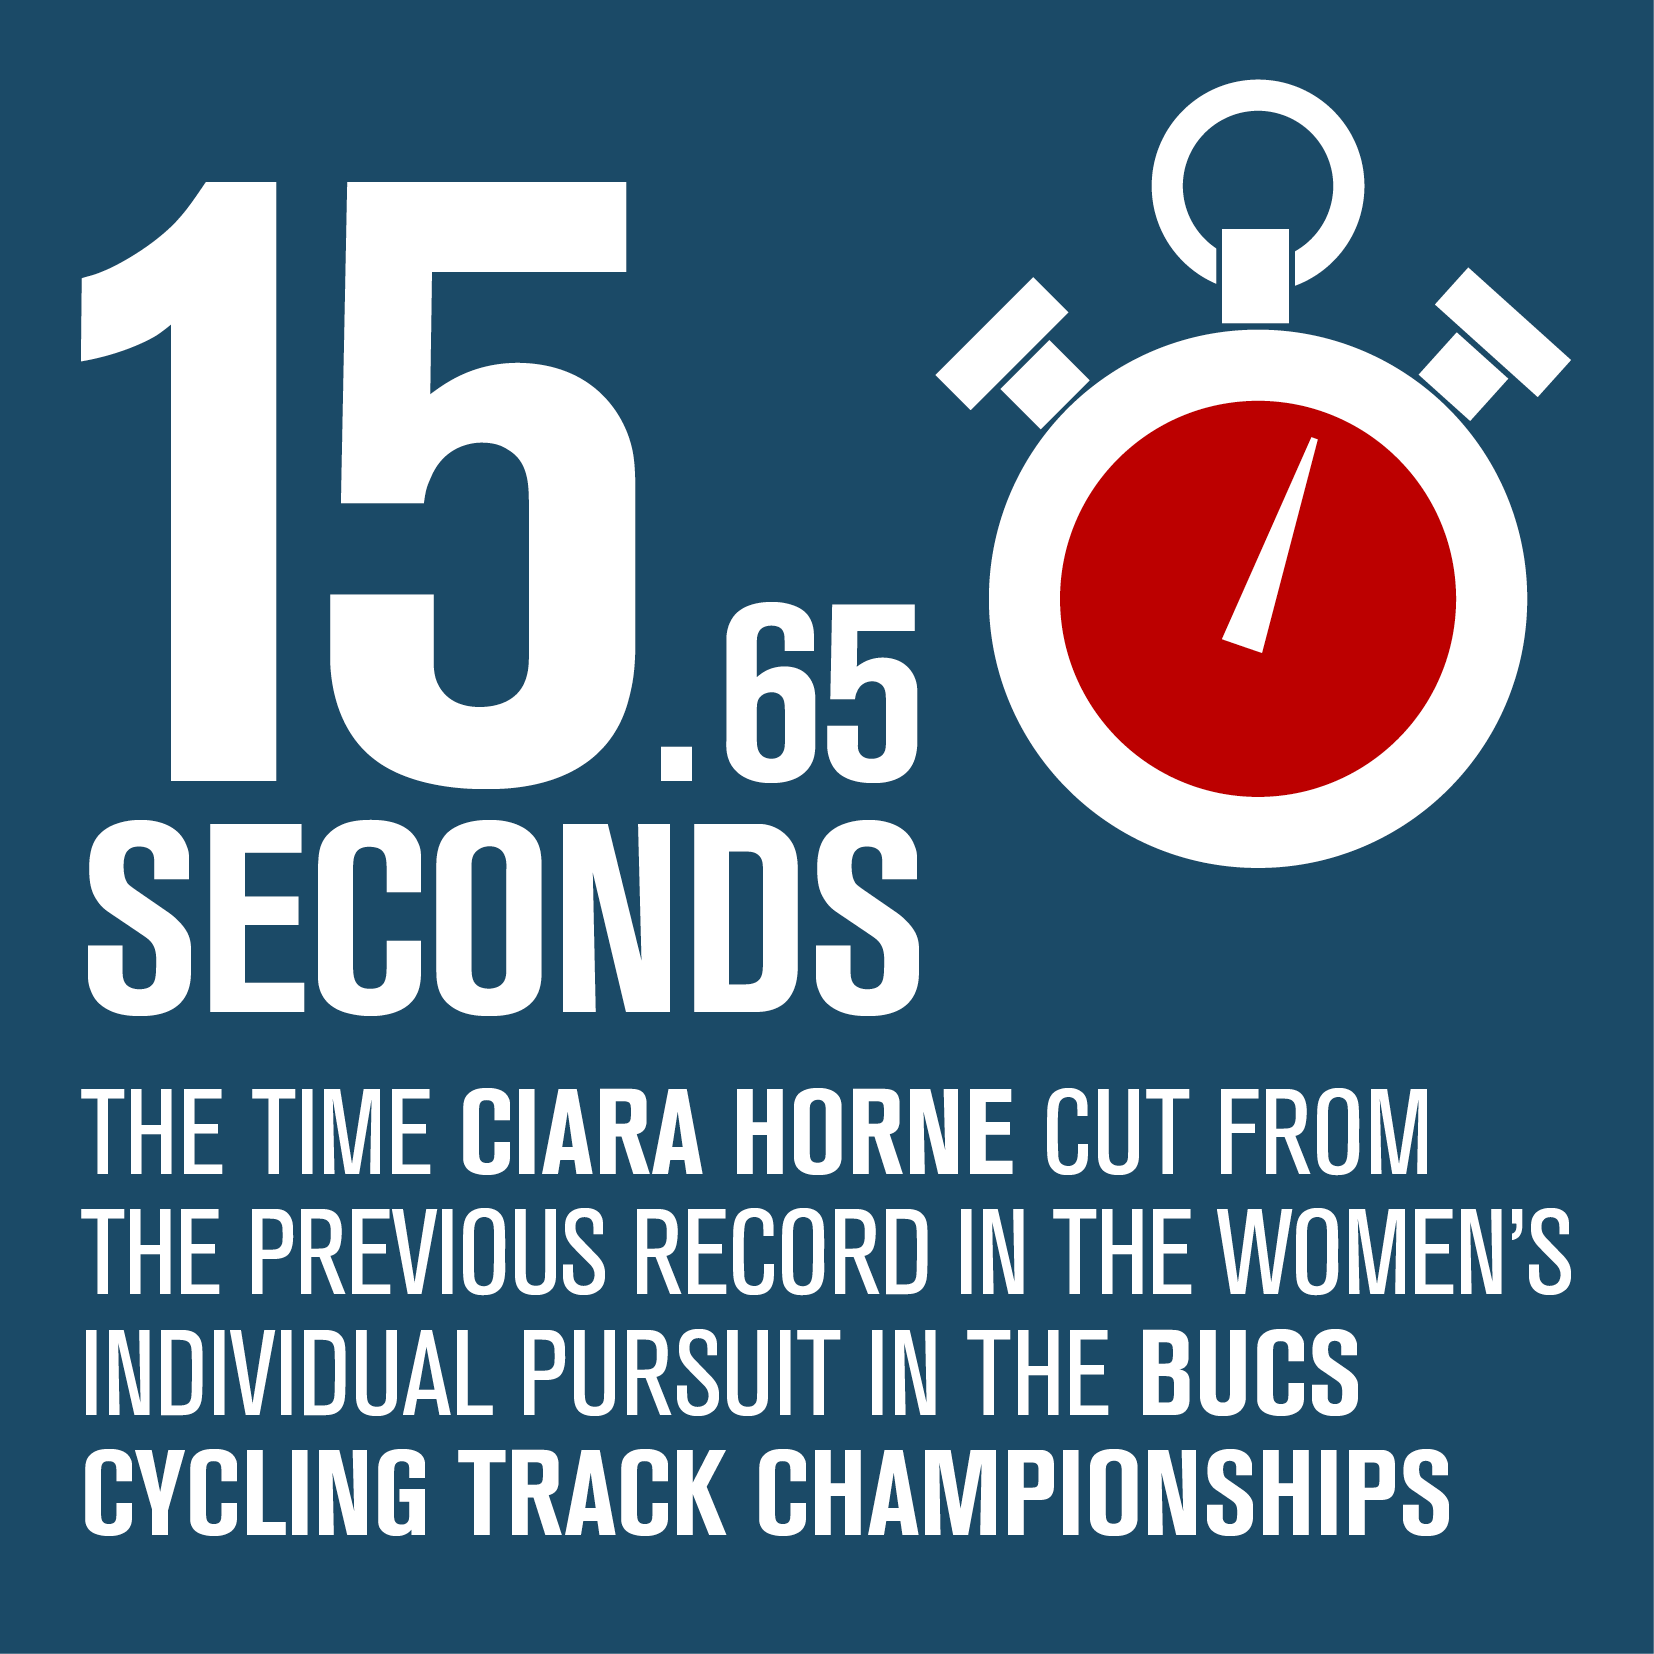 15.65 seconds - the time Ciara Horne cut from the previous record in the women's individual persuit in the BUCS Cycling Track Championships